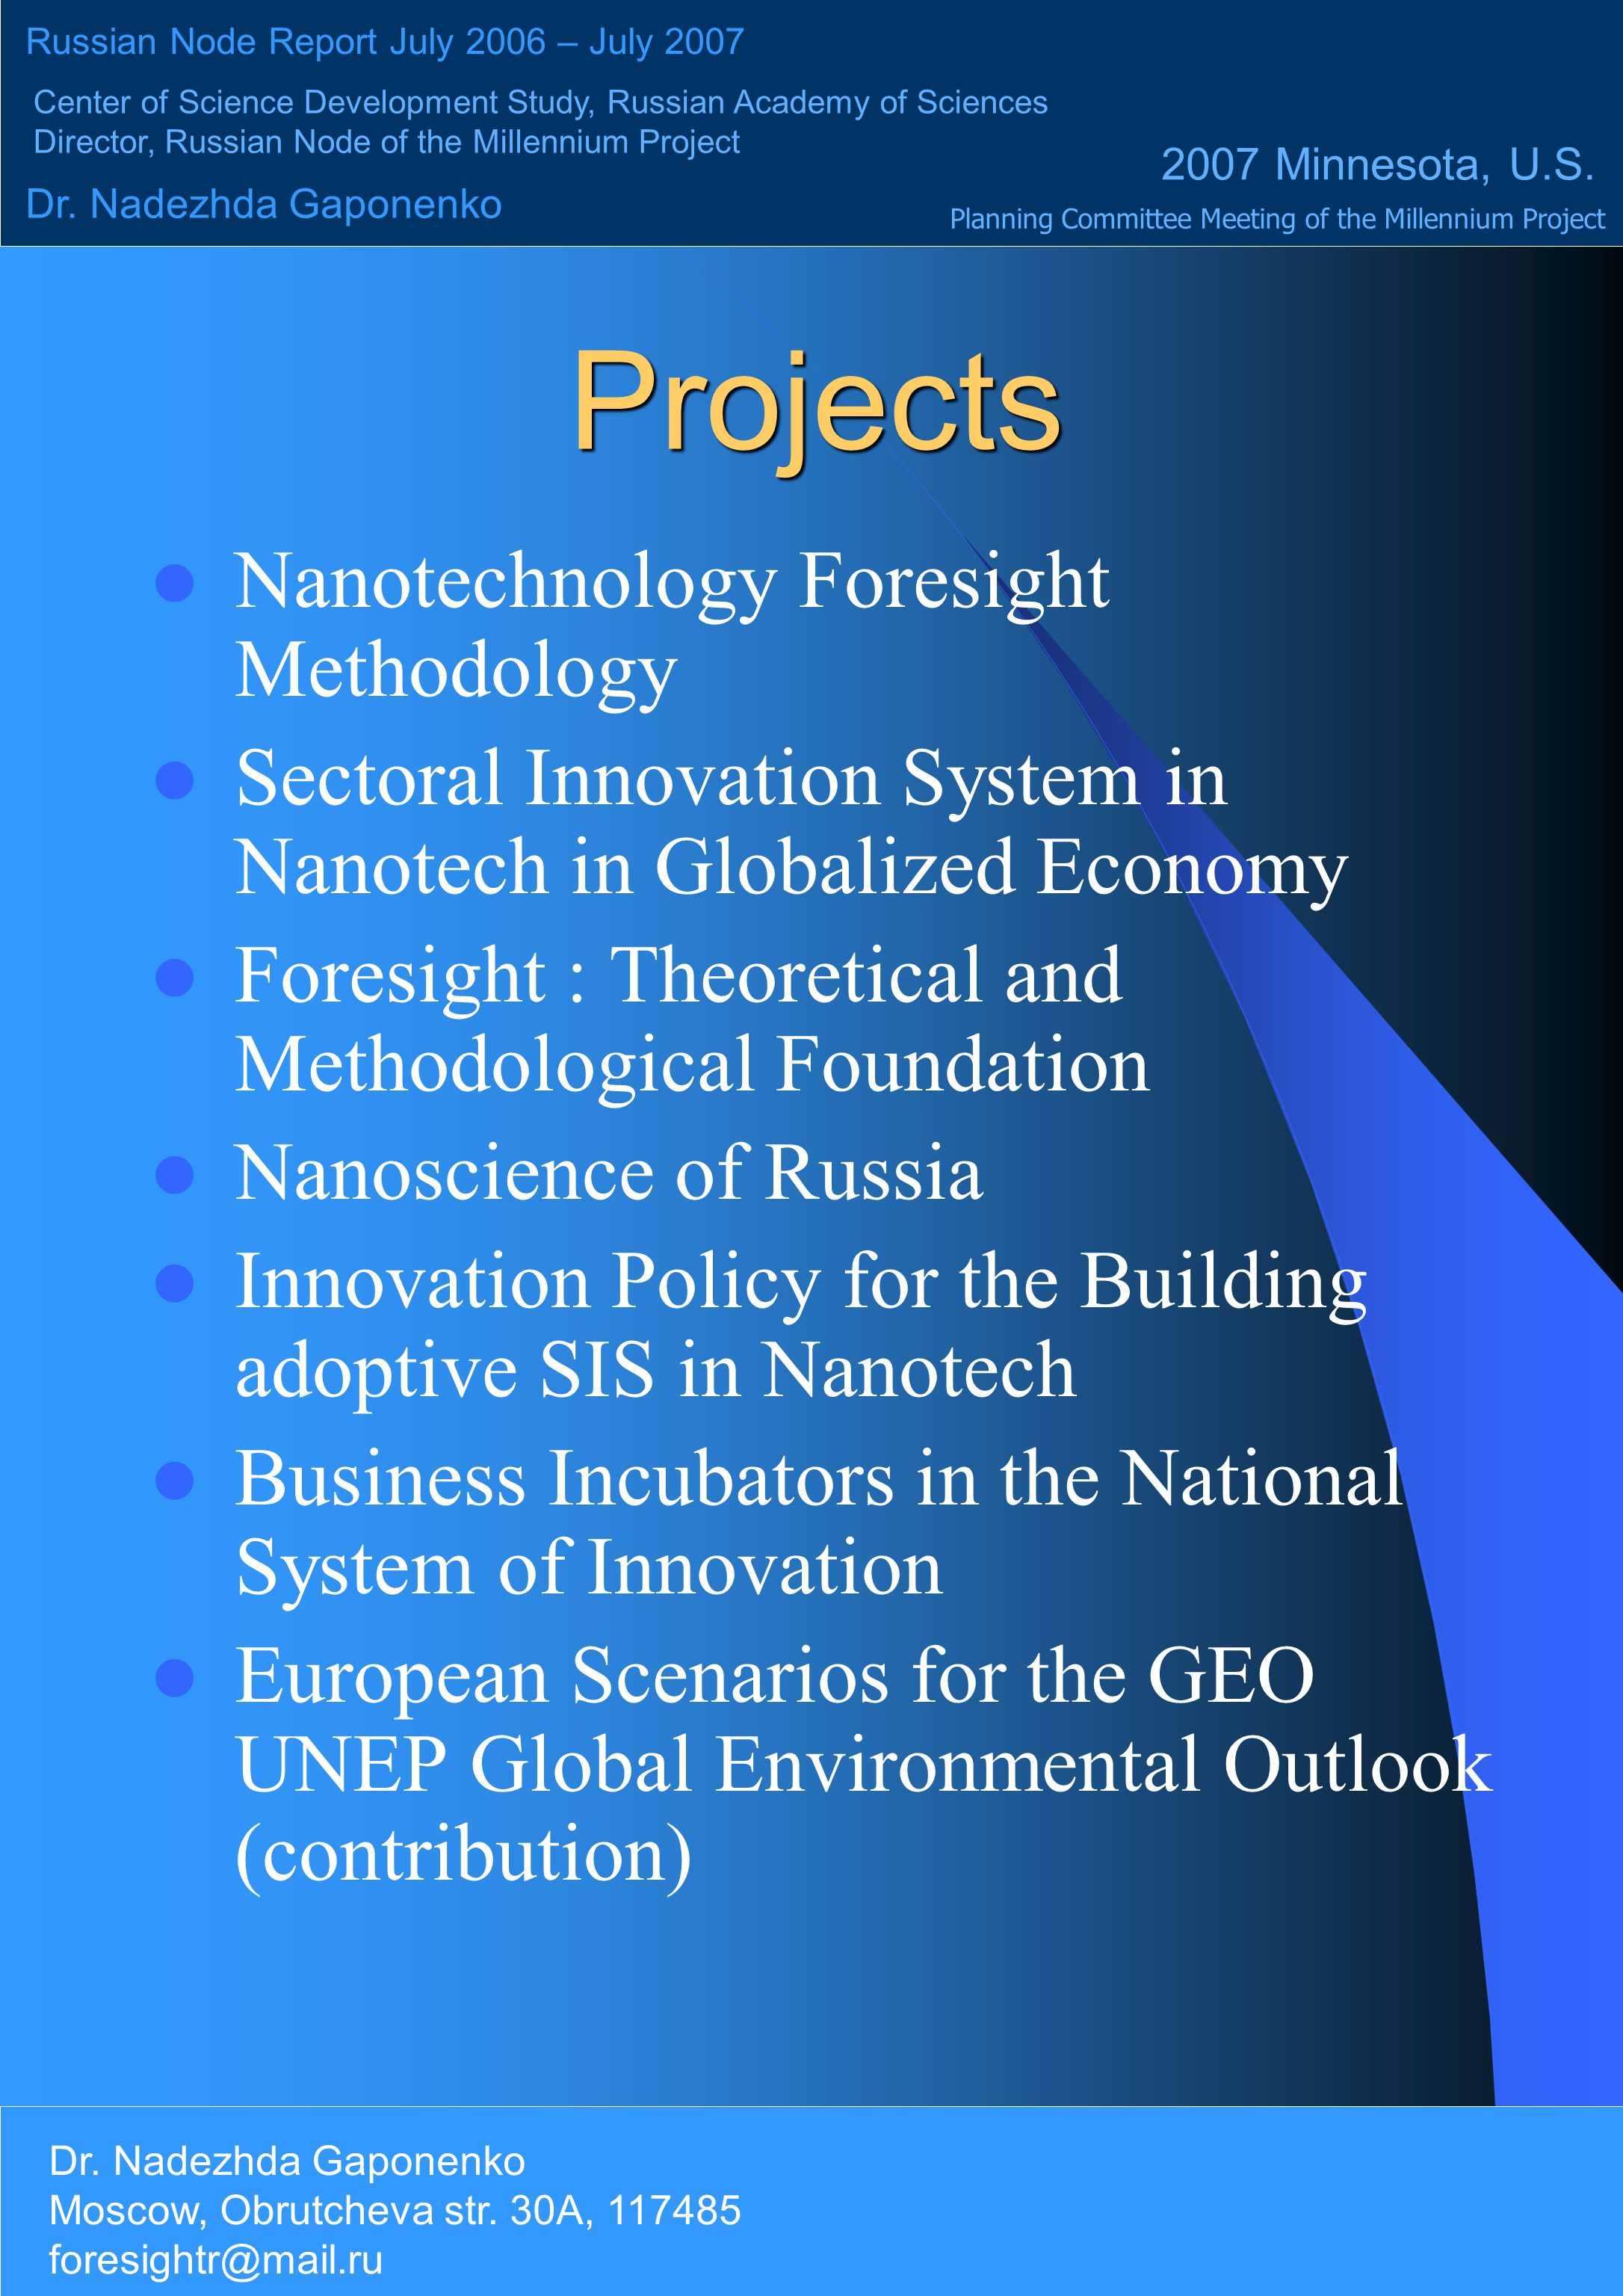 Publications Nanotechnology : Foresight (ed.N. Gaponenko).